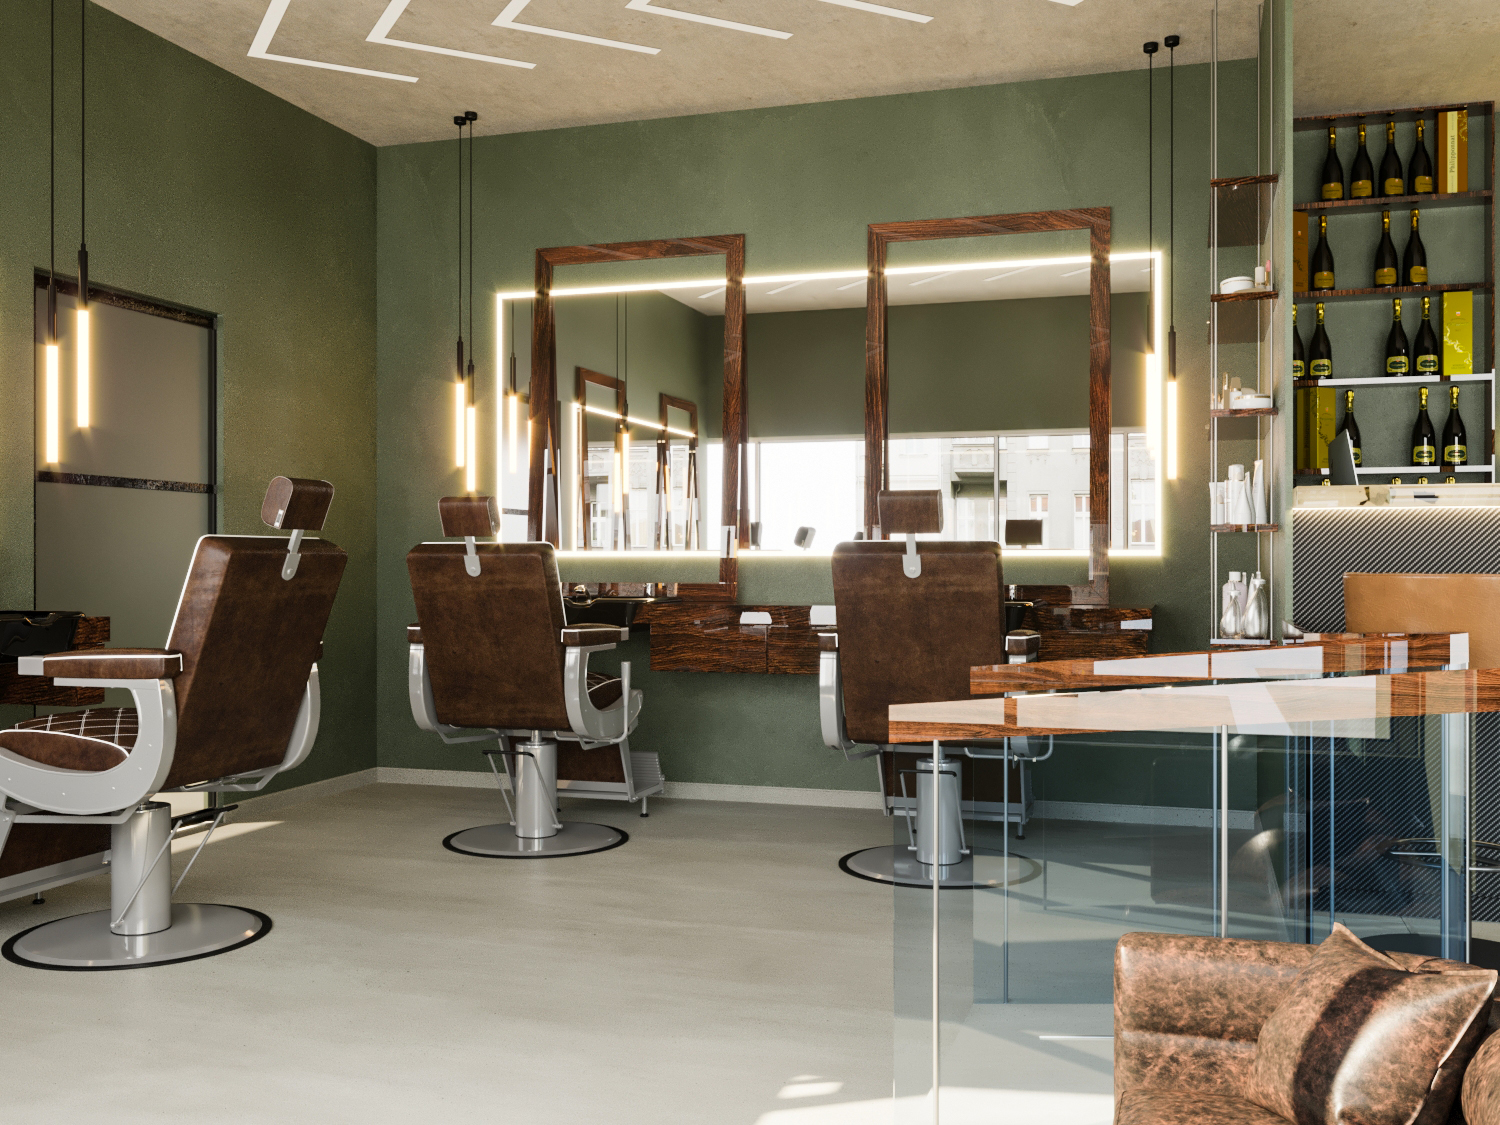 Barbershop design in San Pedro (Marbella, Spain)